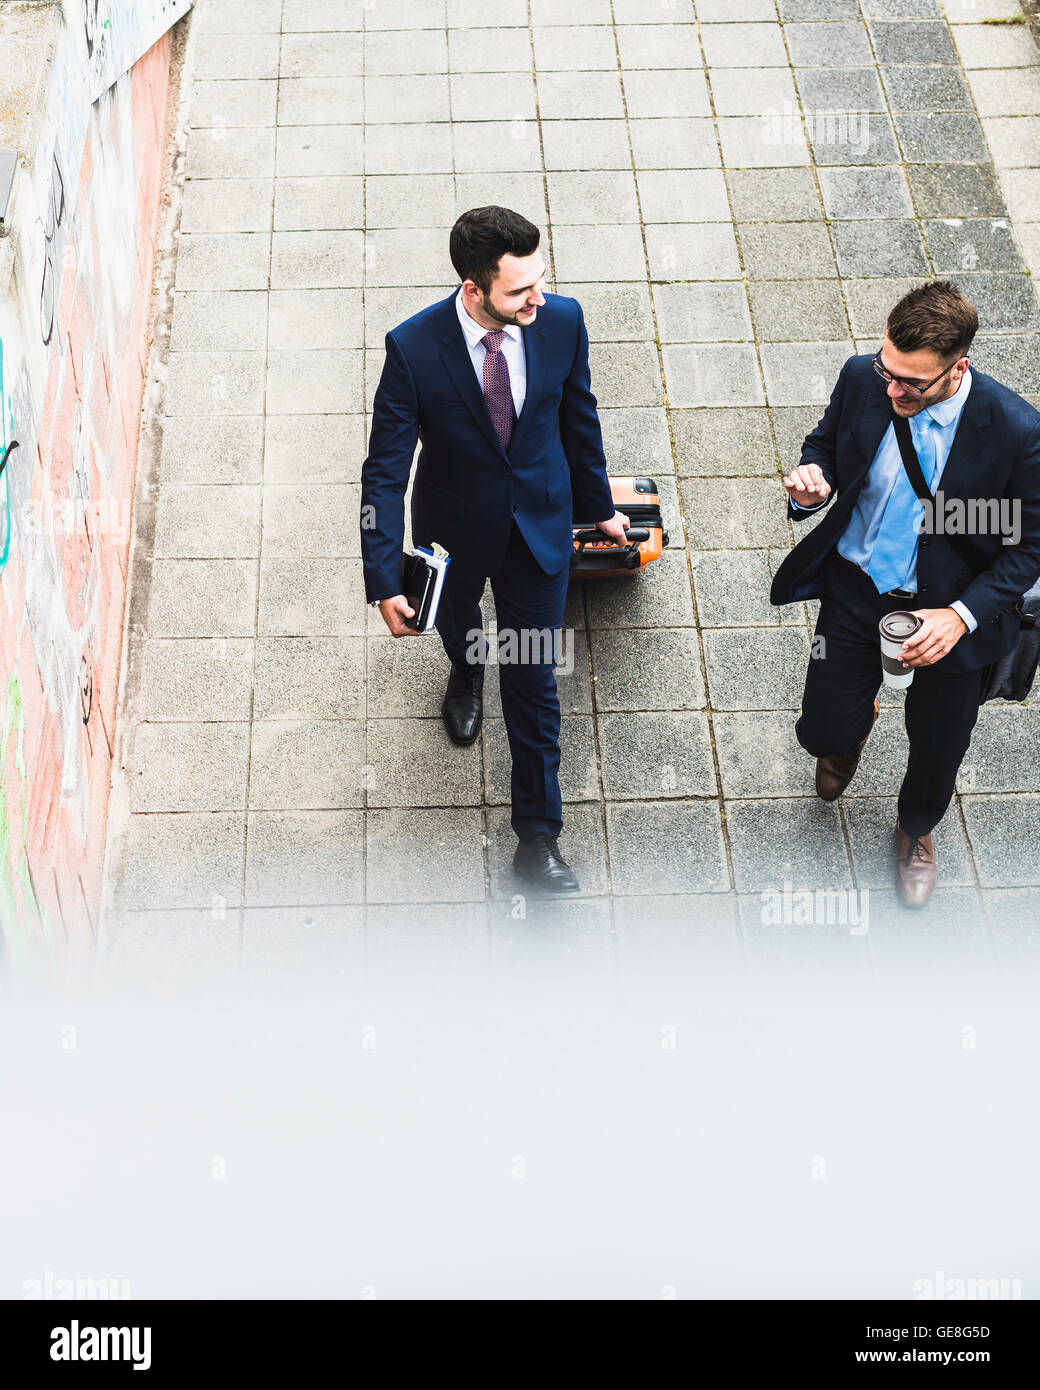 Businessmen on business trip walking with wheeled luggage - Stock Image